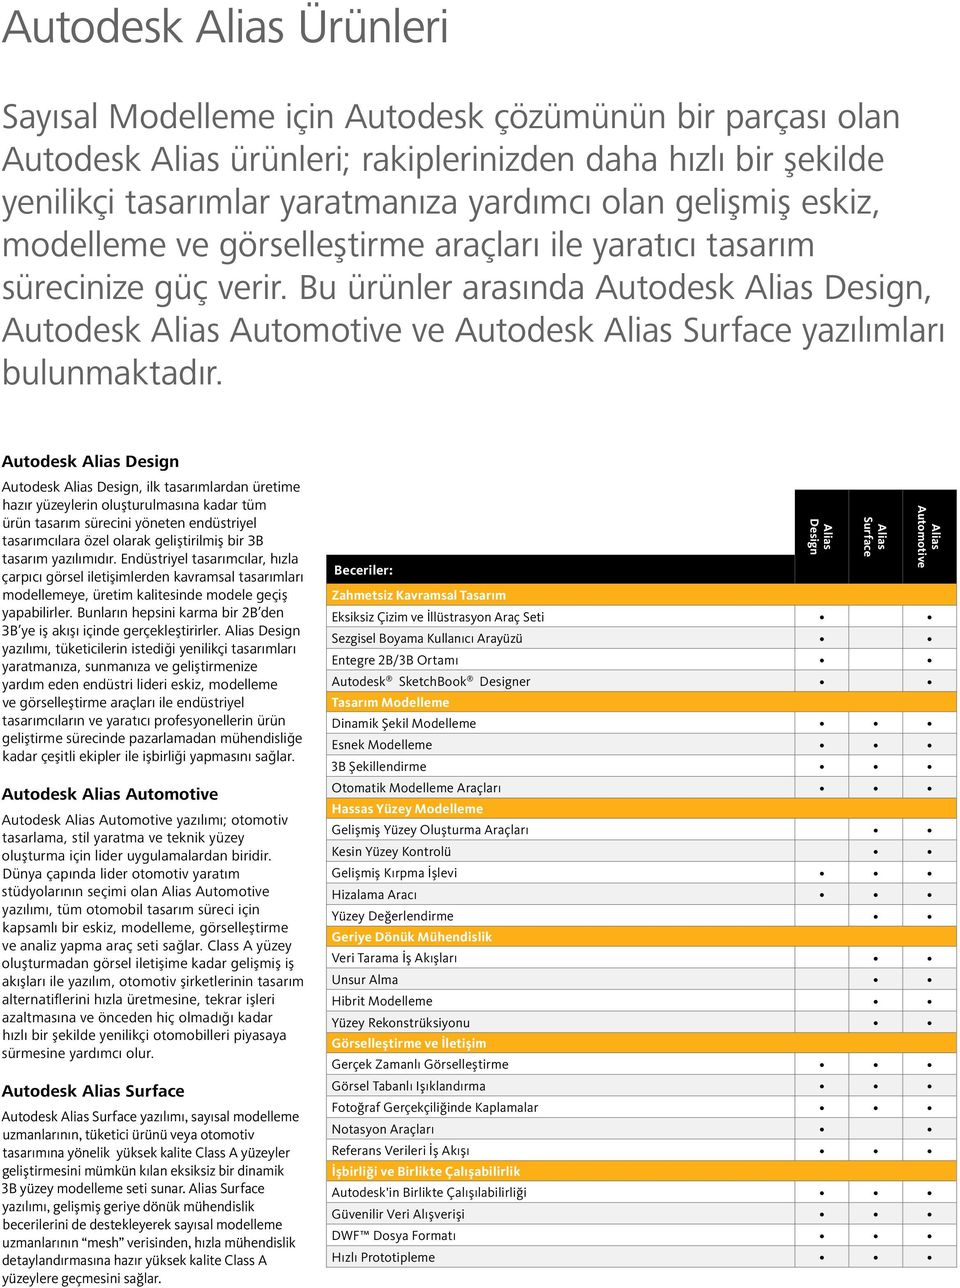 Bu ürünler arasında Autodesk Alias Design, Autodesk Alias Automotive ve Autodesk Alias Surface yazılımları bulunmaktadır.